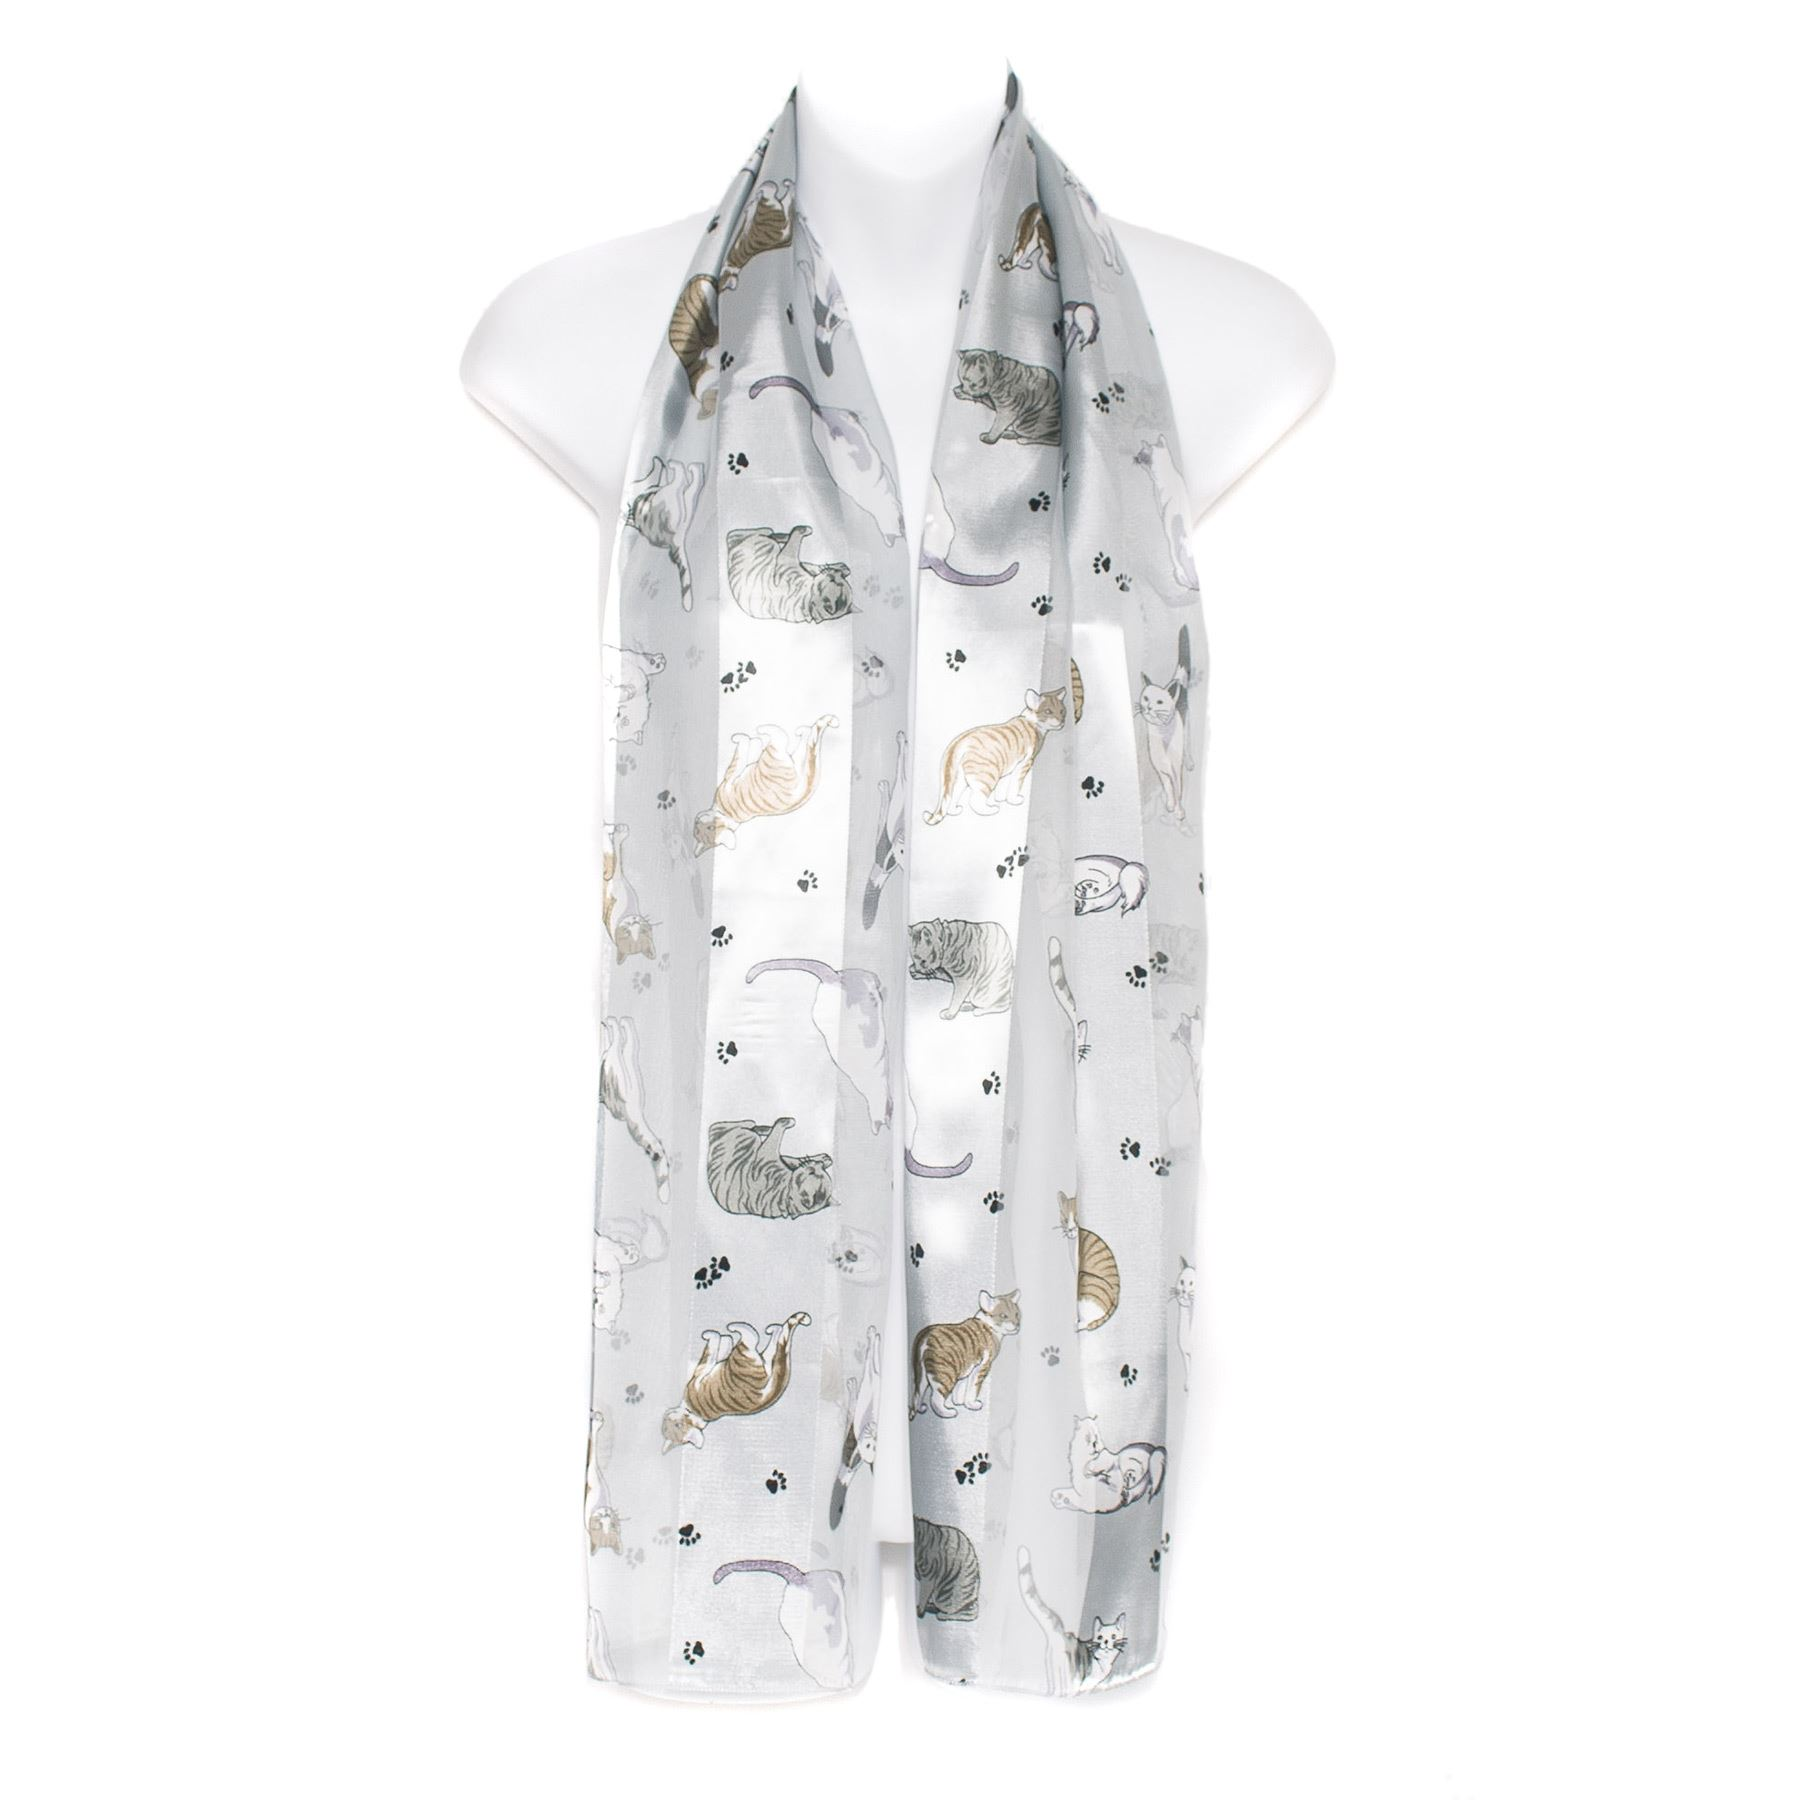 Cat-Breed-Paw-Print-Chiffon-Satin-Ladies-Scarf thumbnail 9